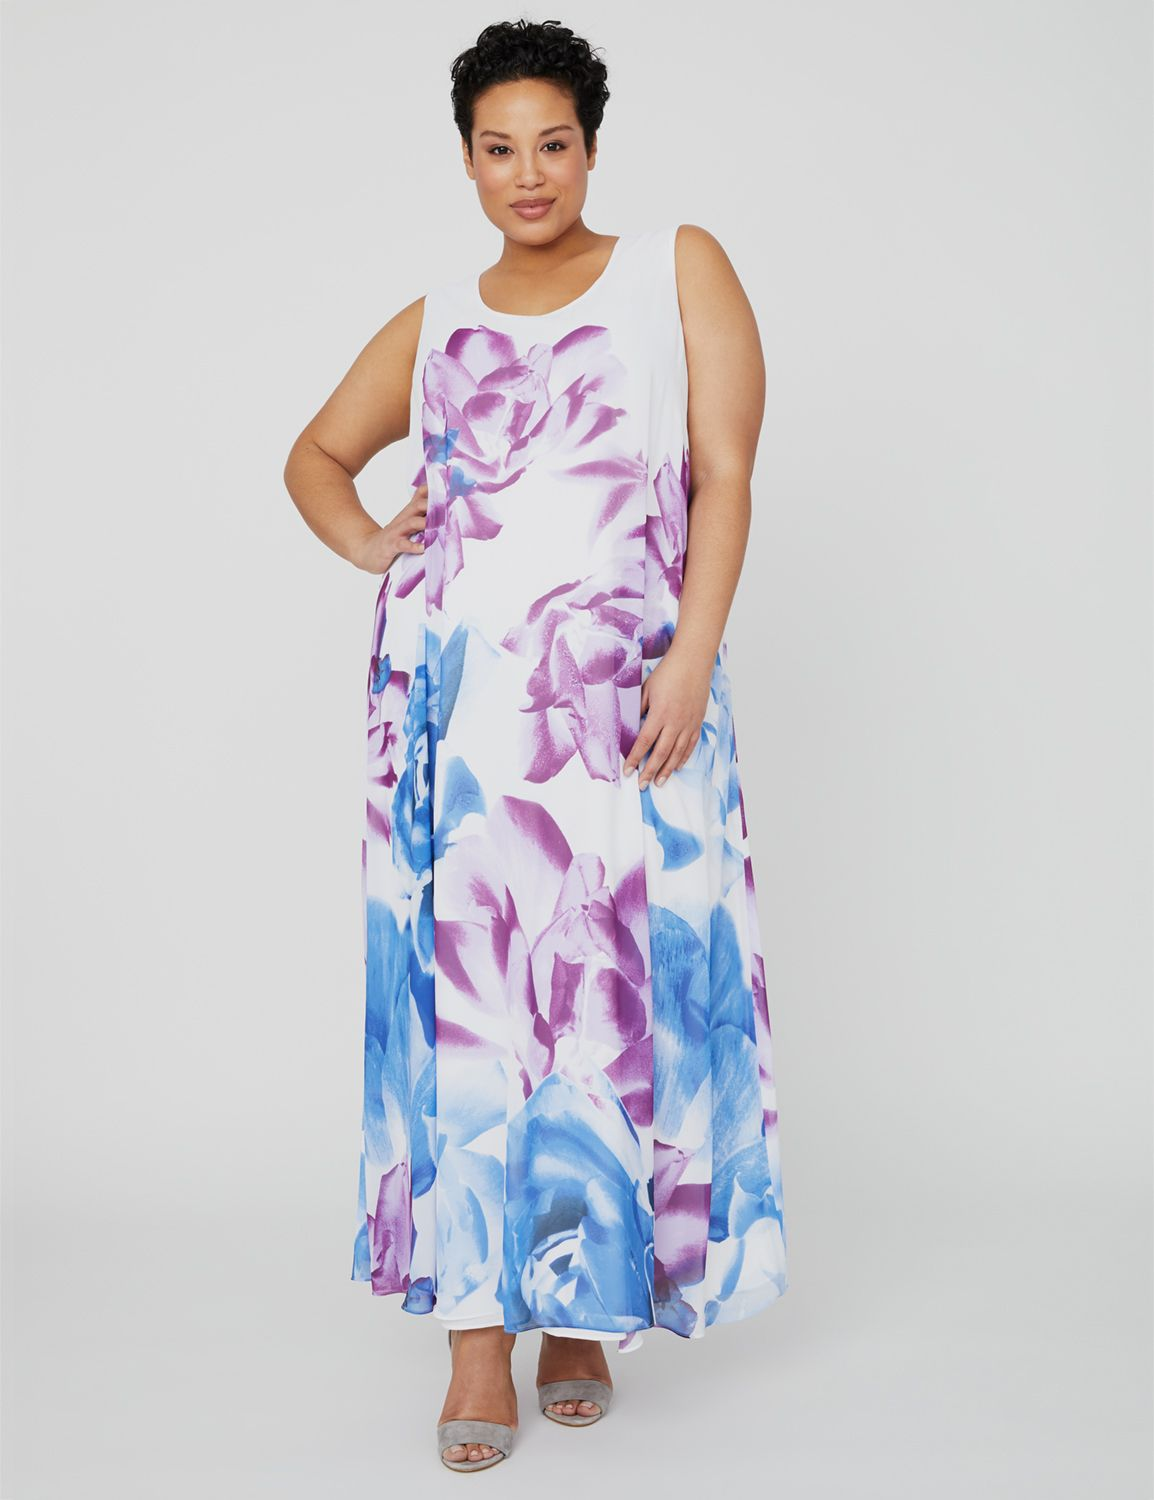 Black Label Rosebloom Maxi Dress 1088697 Printed Woven Sleeveless Ma MP-300100173